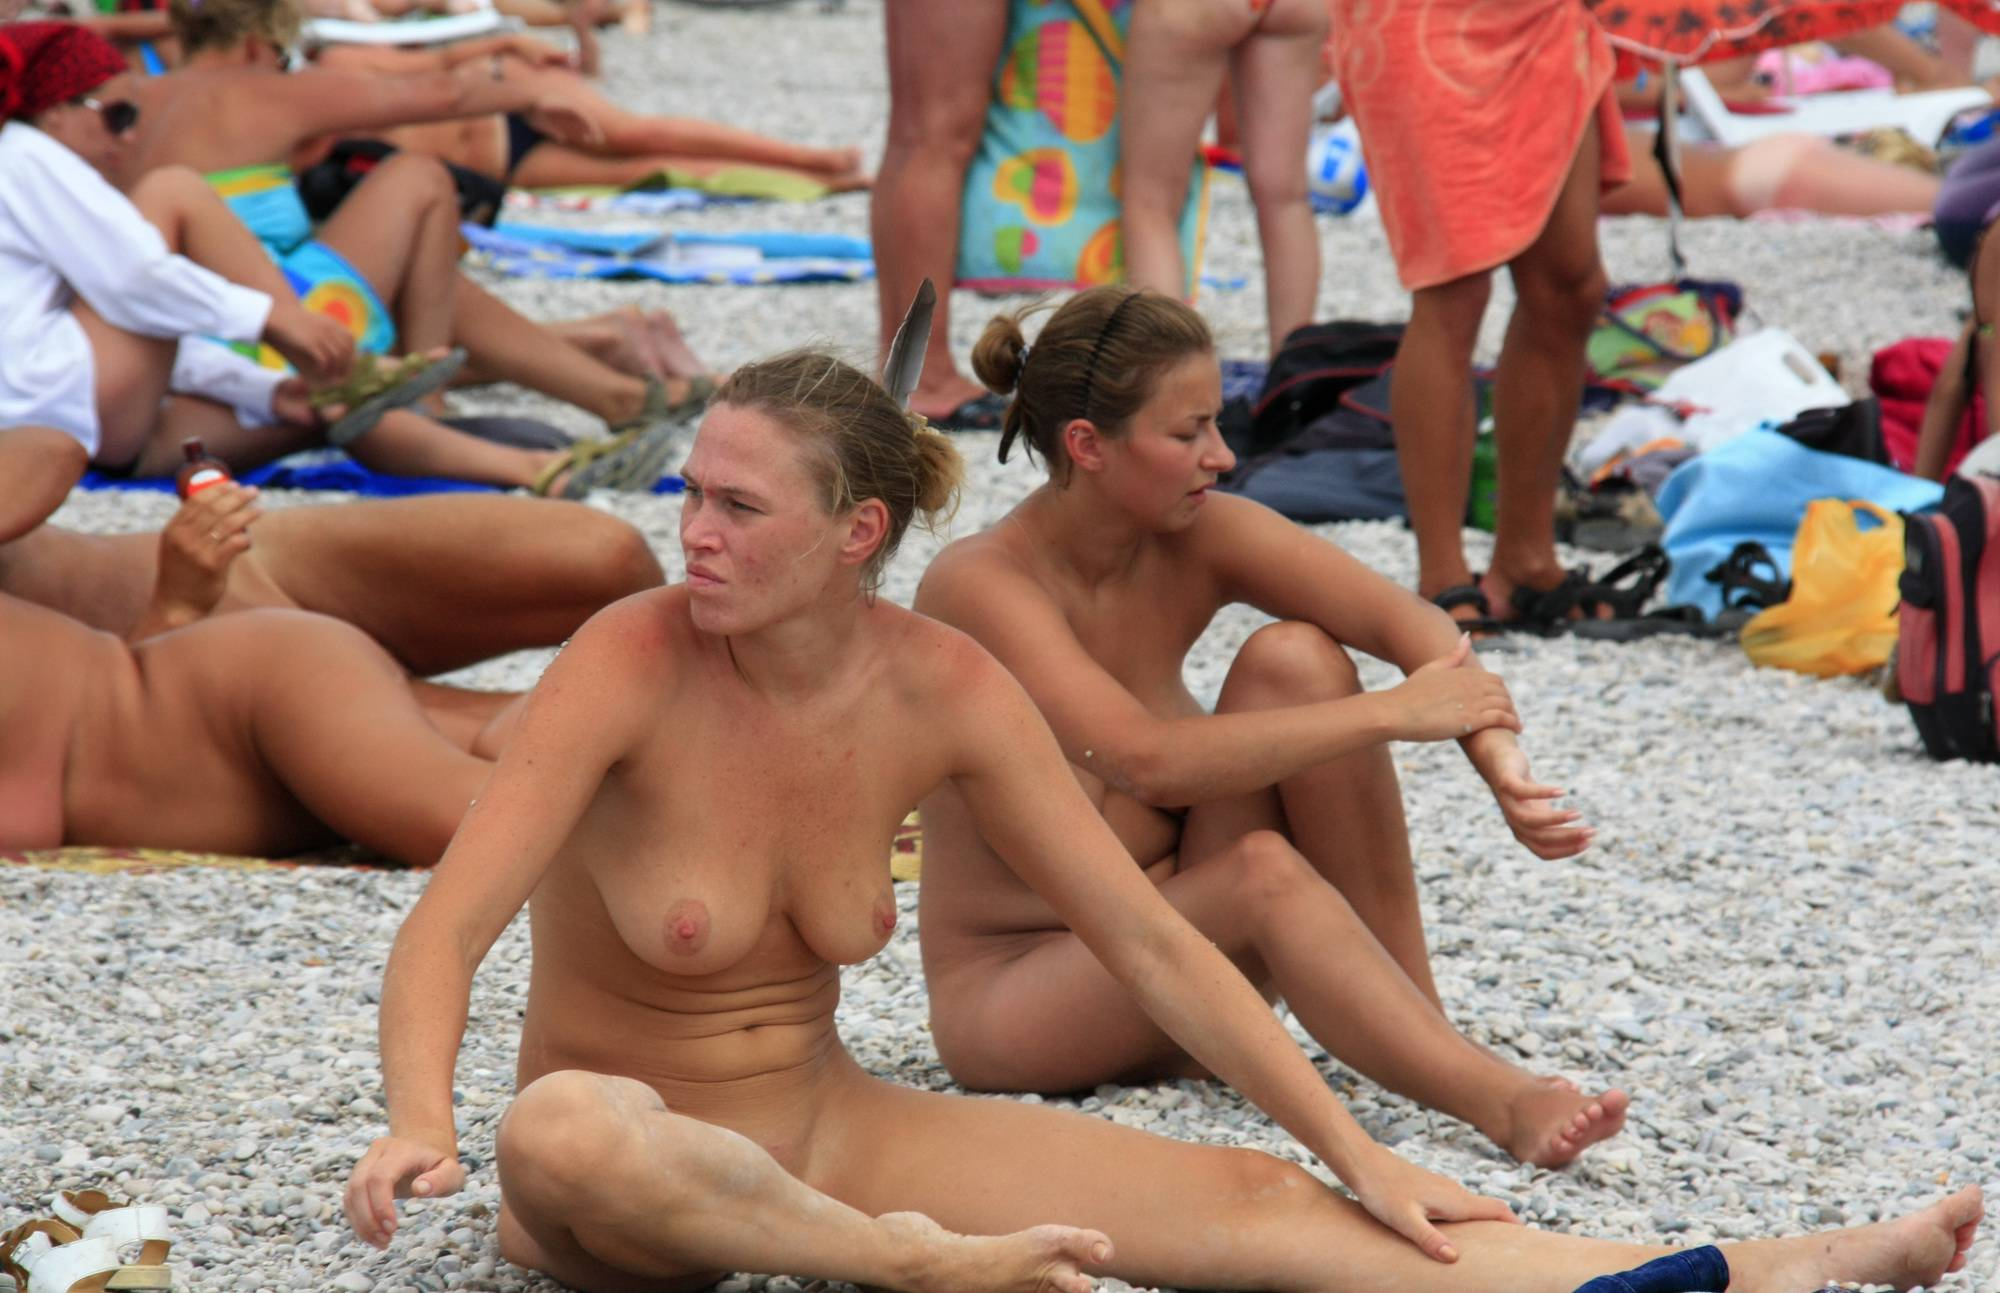 Nudist Photos Beach Paints and Girl Rests - 2